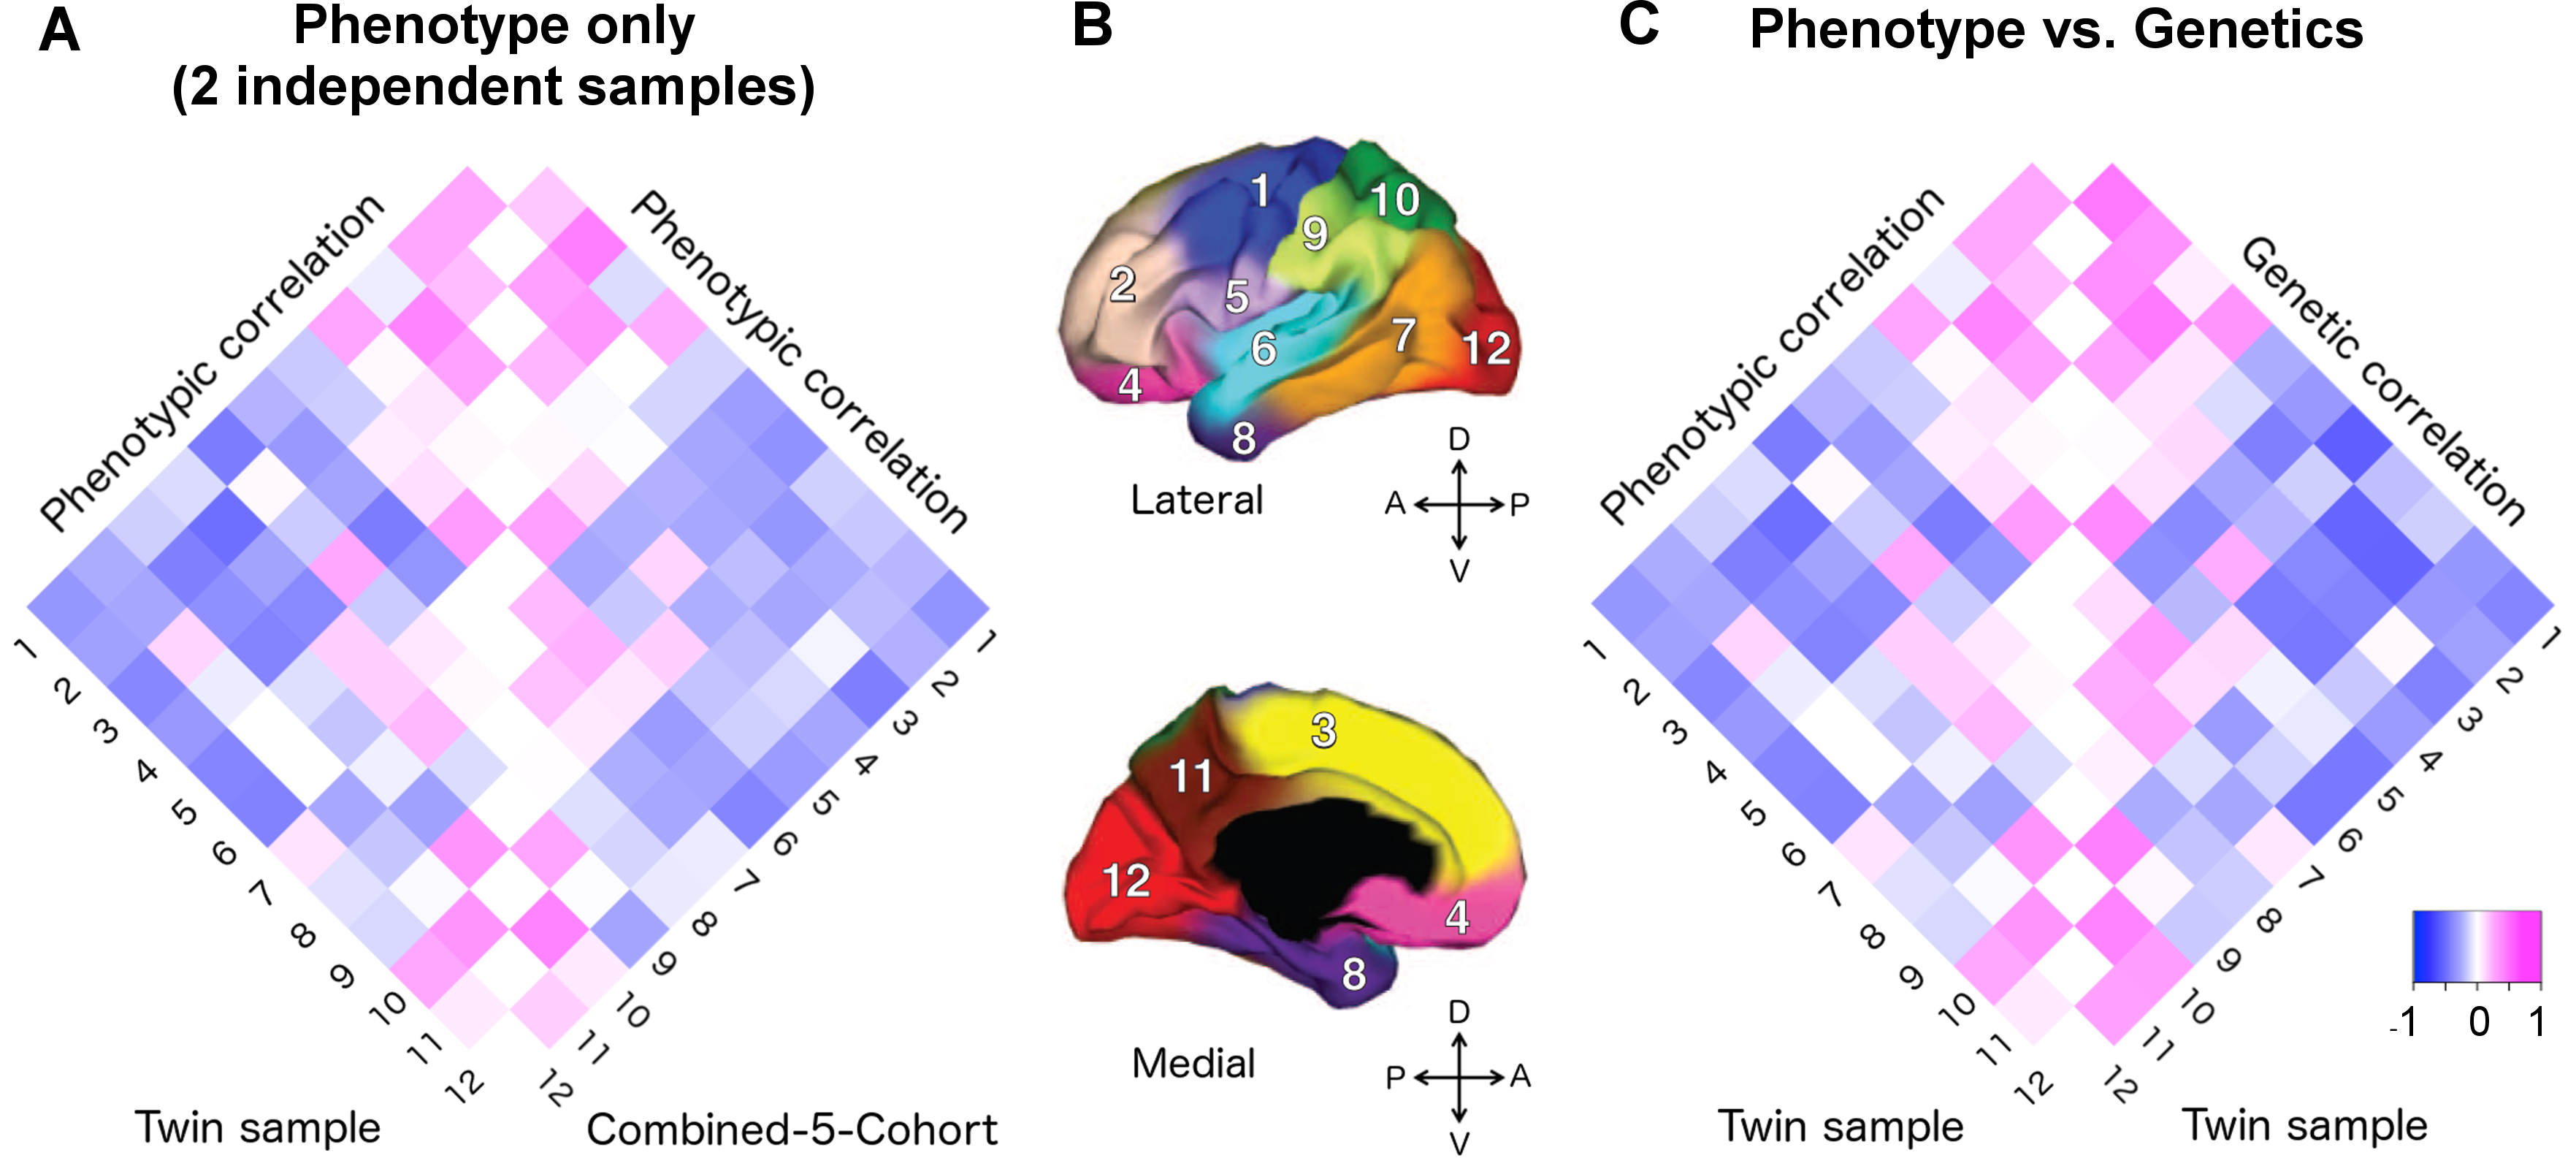 Applying the genetically based cortical parcellations to independent data.